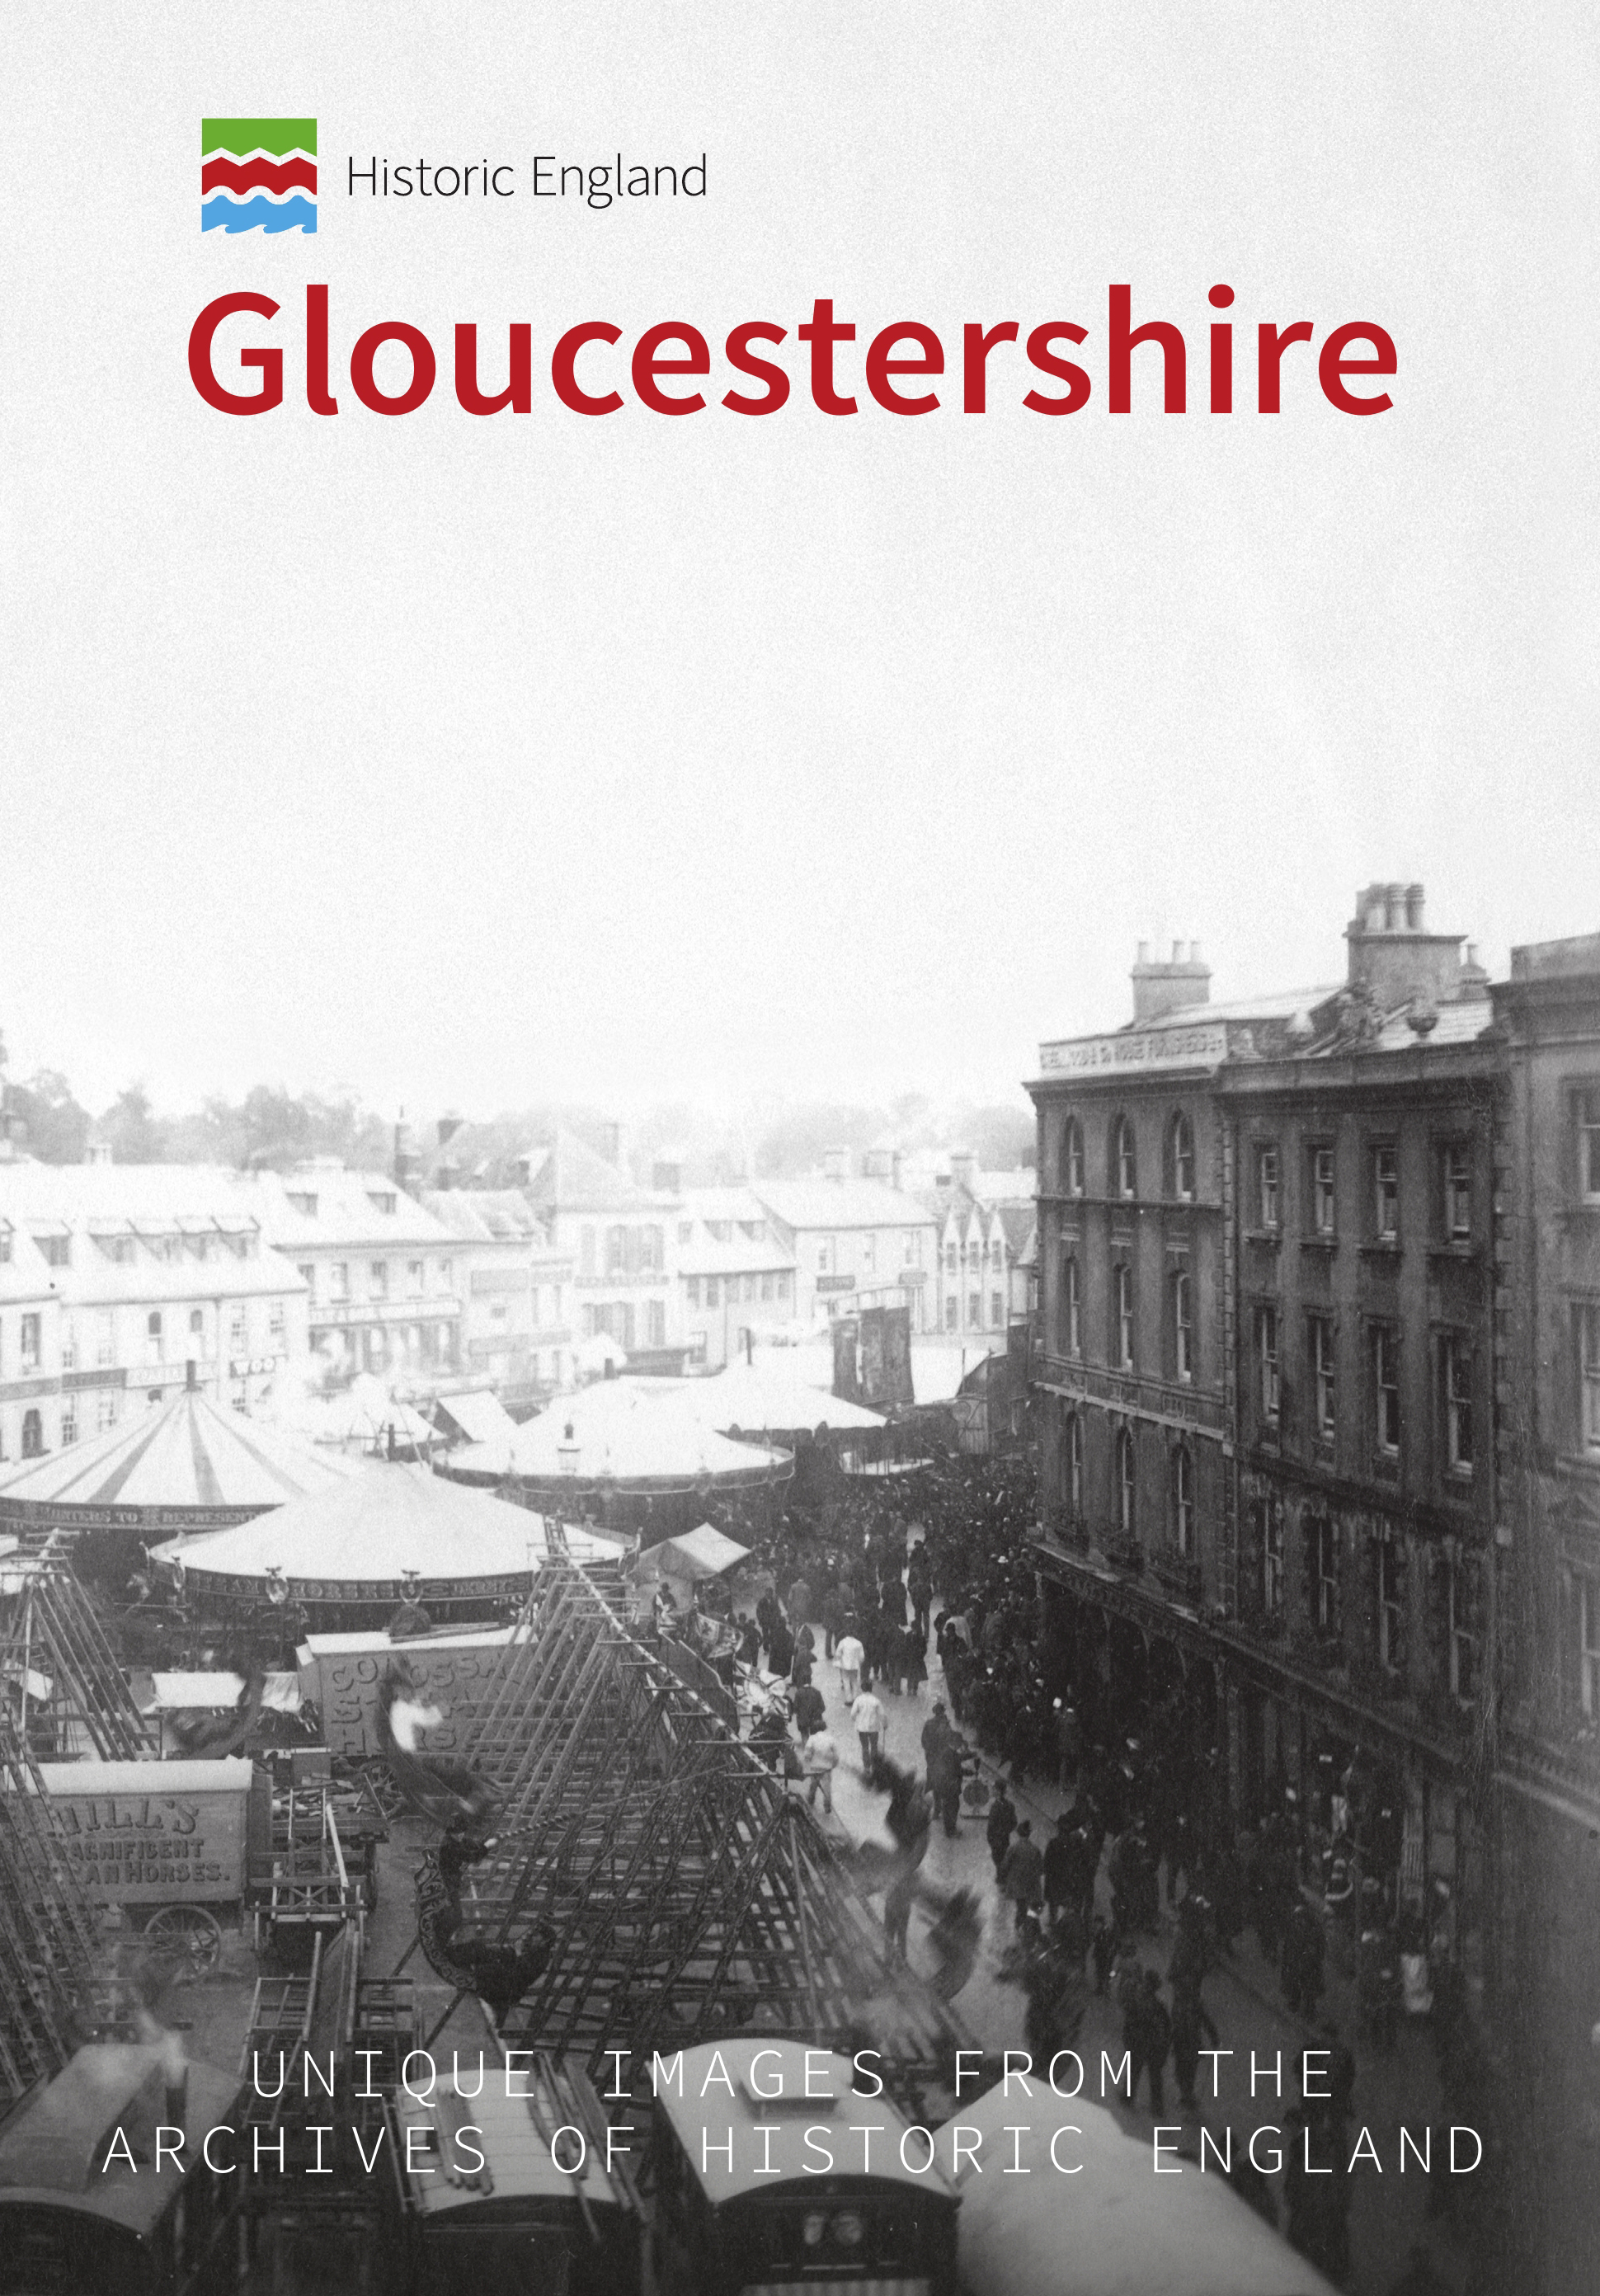 HE Gloucestershire Book Cover.jpg